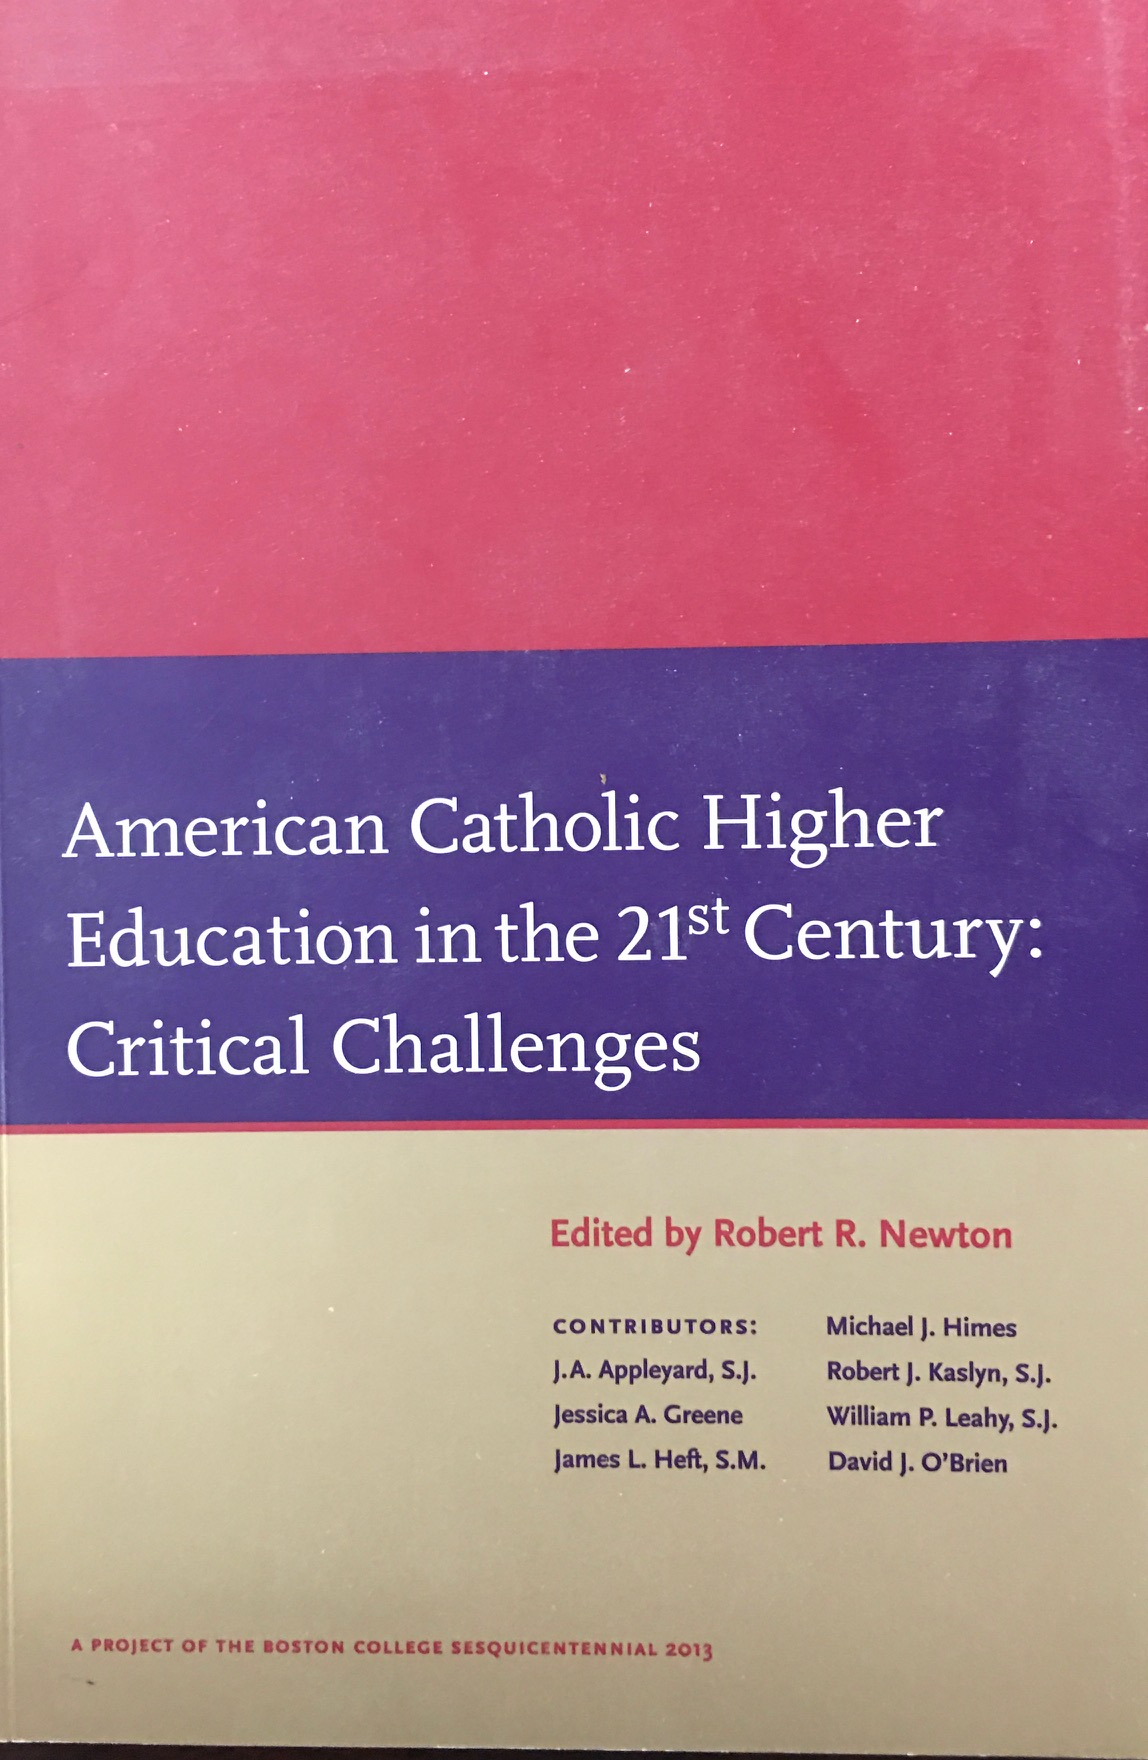 Image for American Catholic higher Education In the 21st Century: Critical Challenges (A Project of the Boston College Sesquicentennial - 2013)